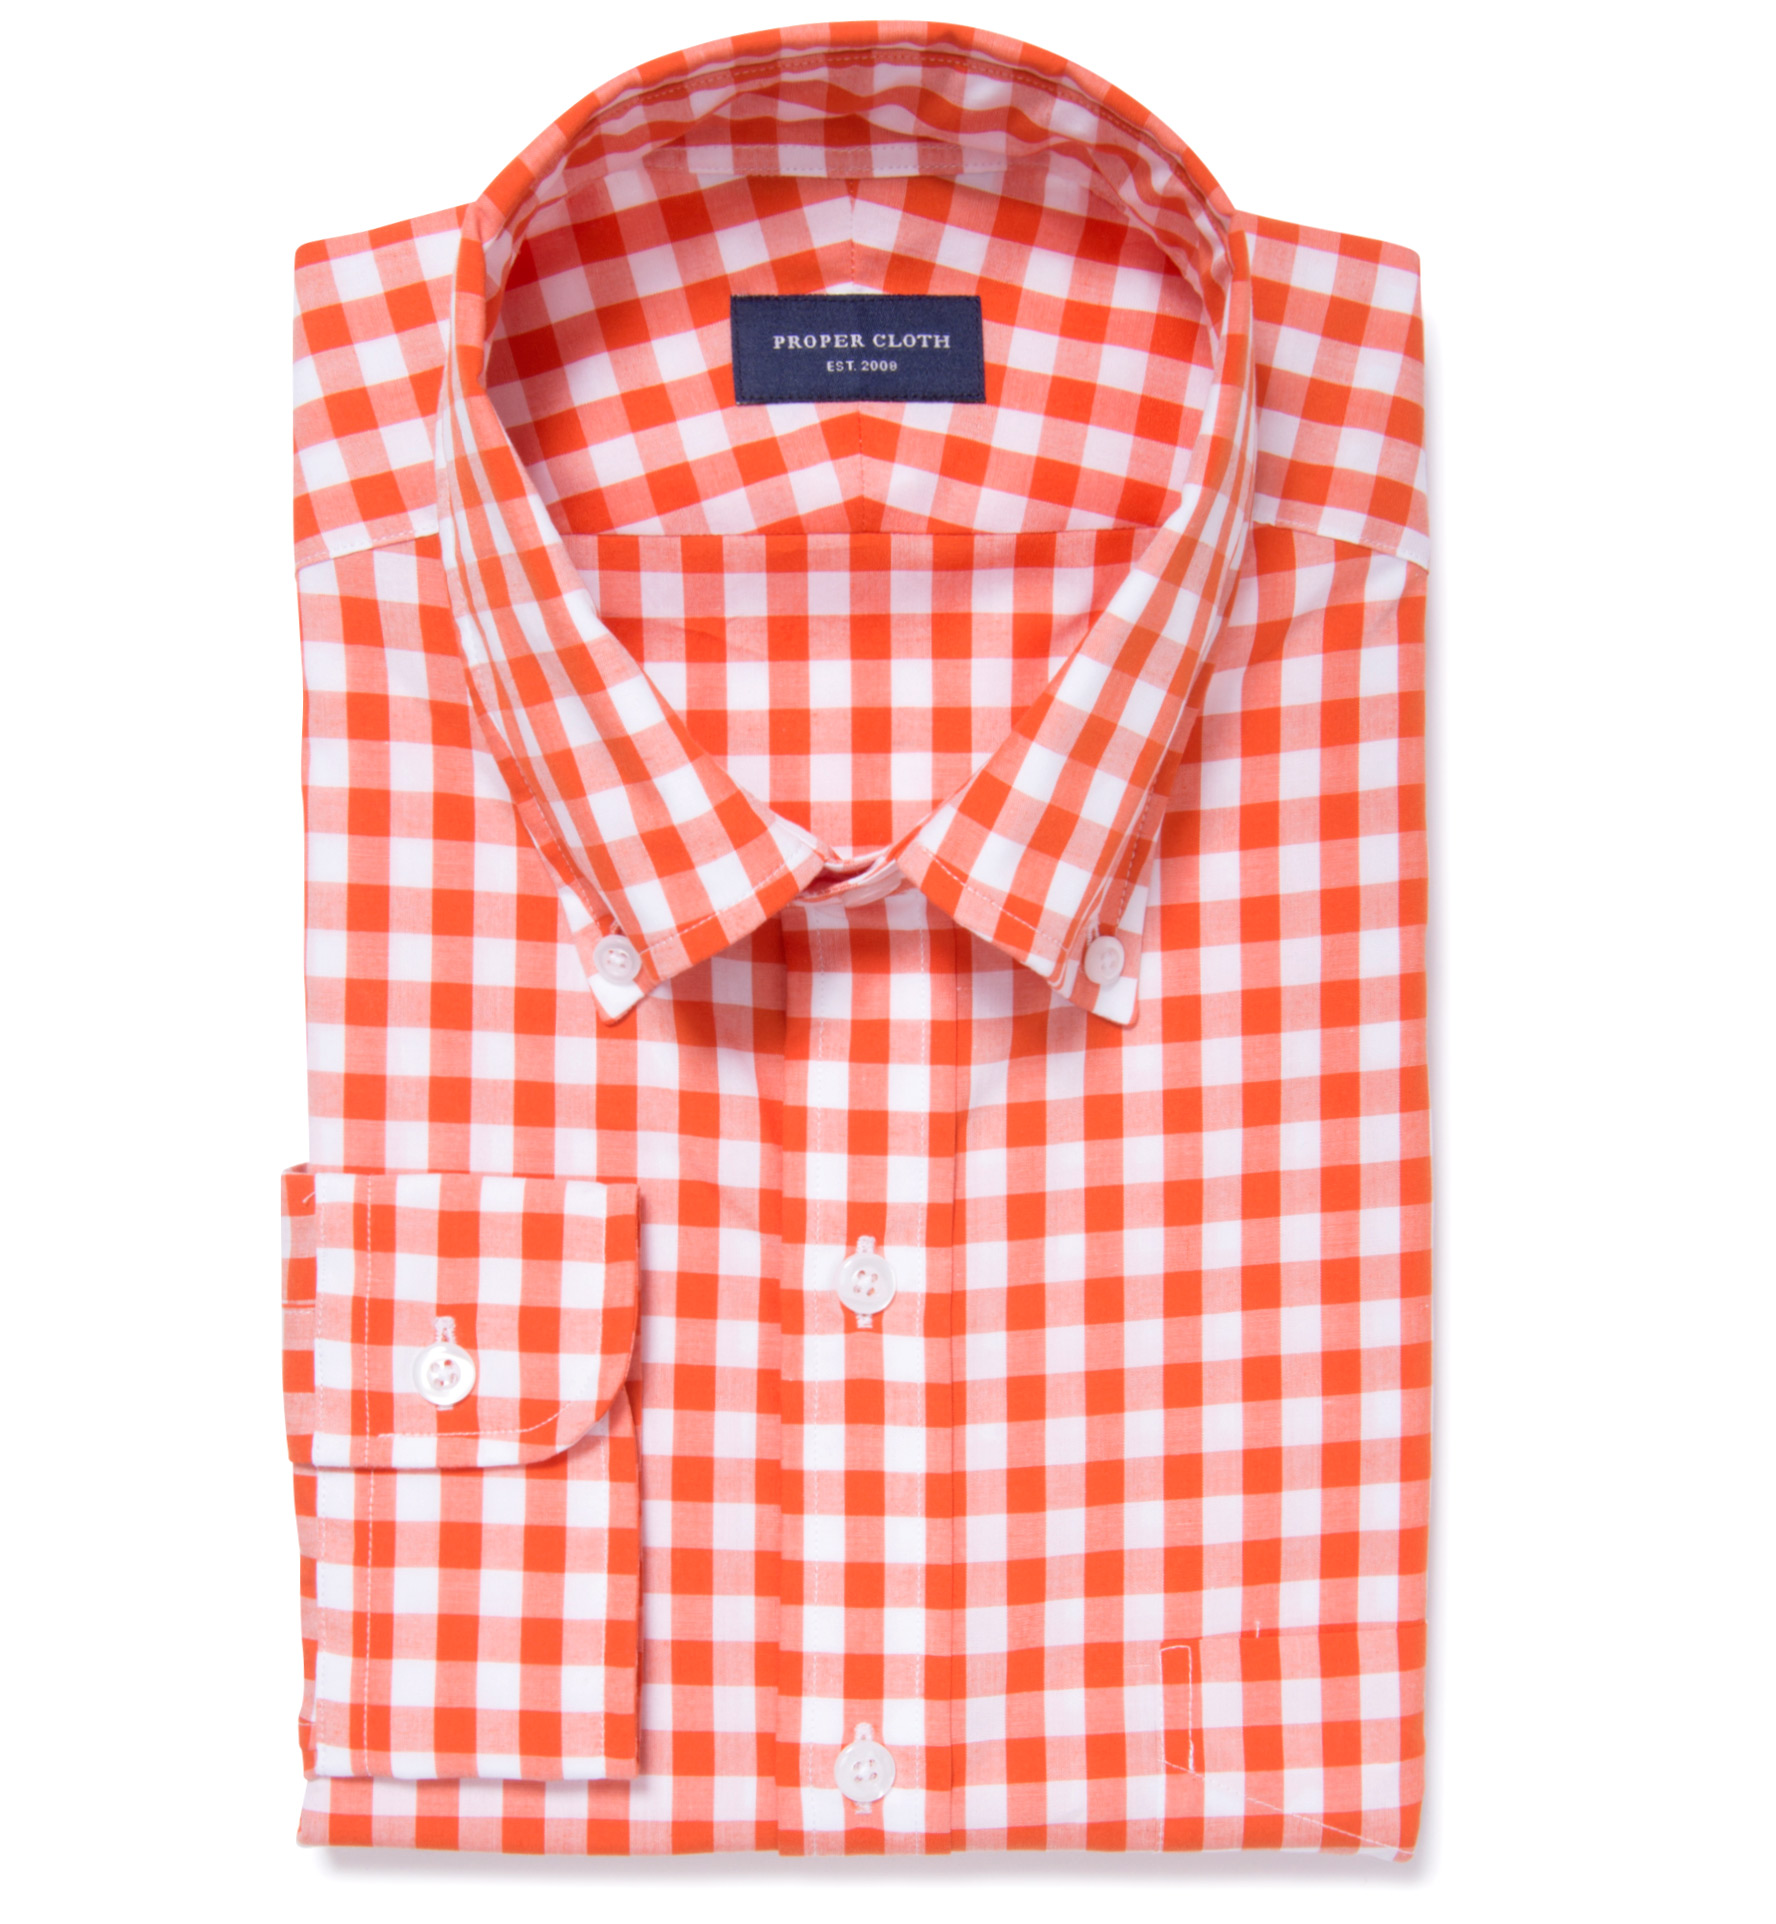 Orange large gingham men 39 s dress shirt by proper cloth for Proper cloth custom shirt price